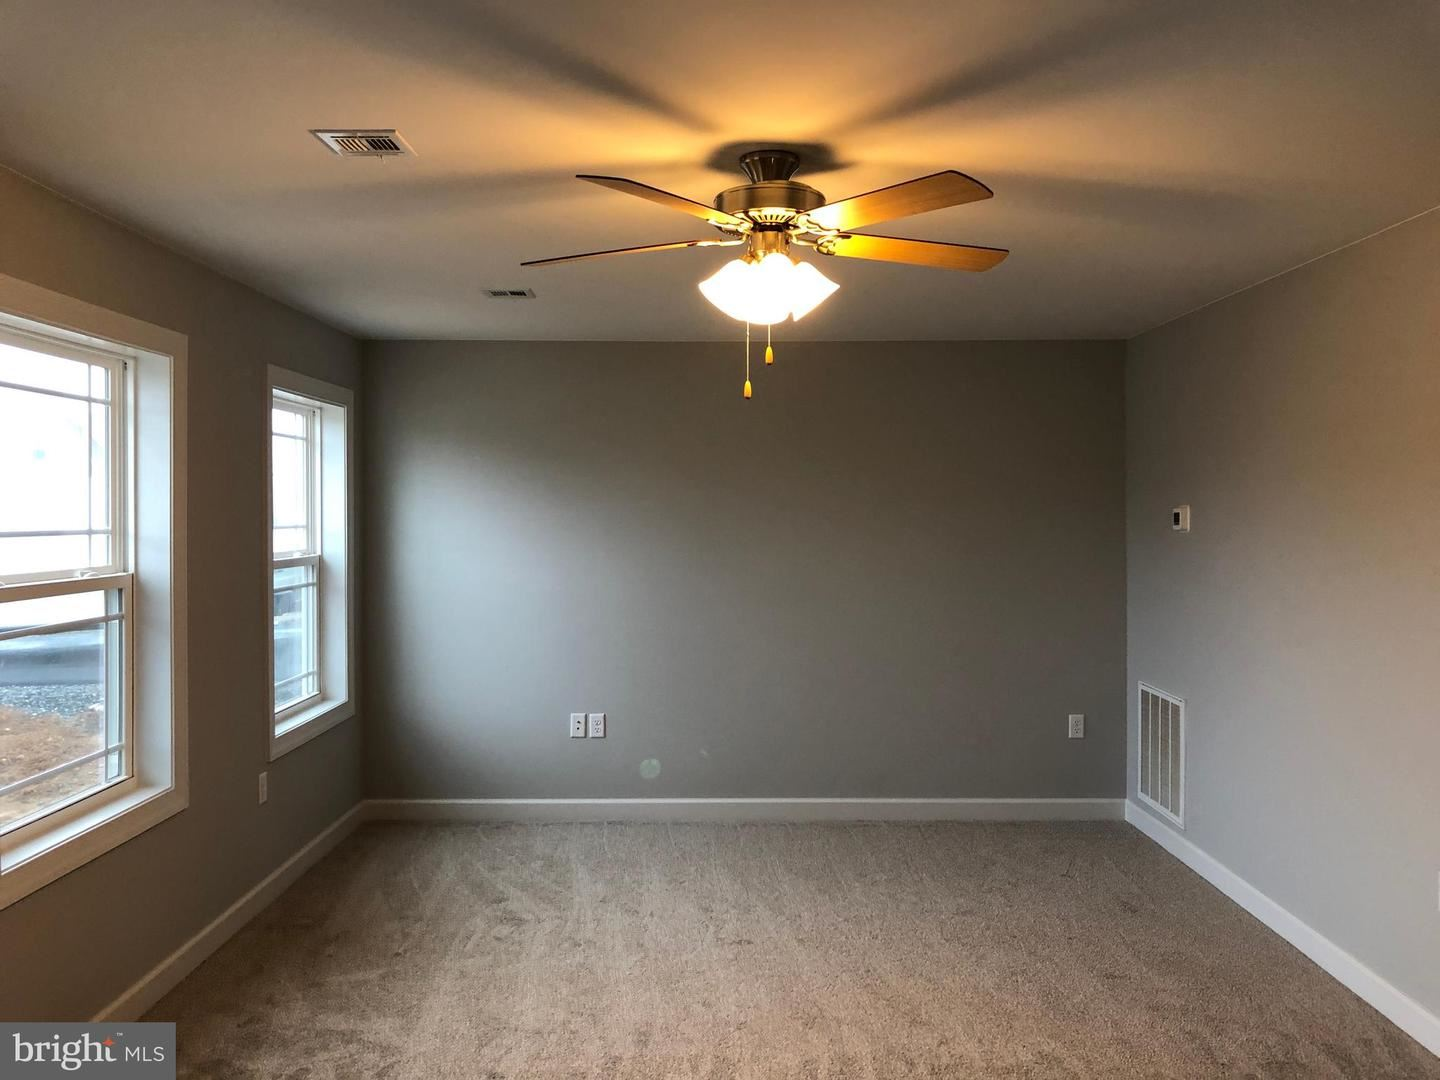 Photo of 12 CLARISSA DR. W, SHIPPENSBURG, PA 17257 (MLS # PACB121694)